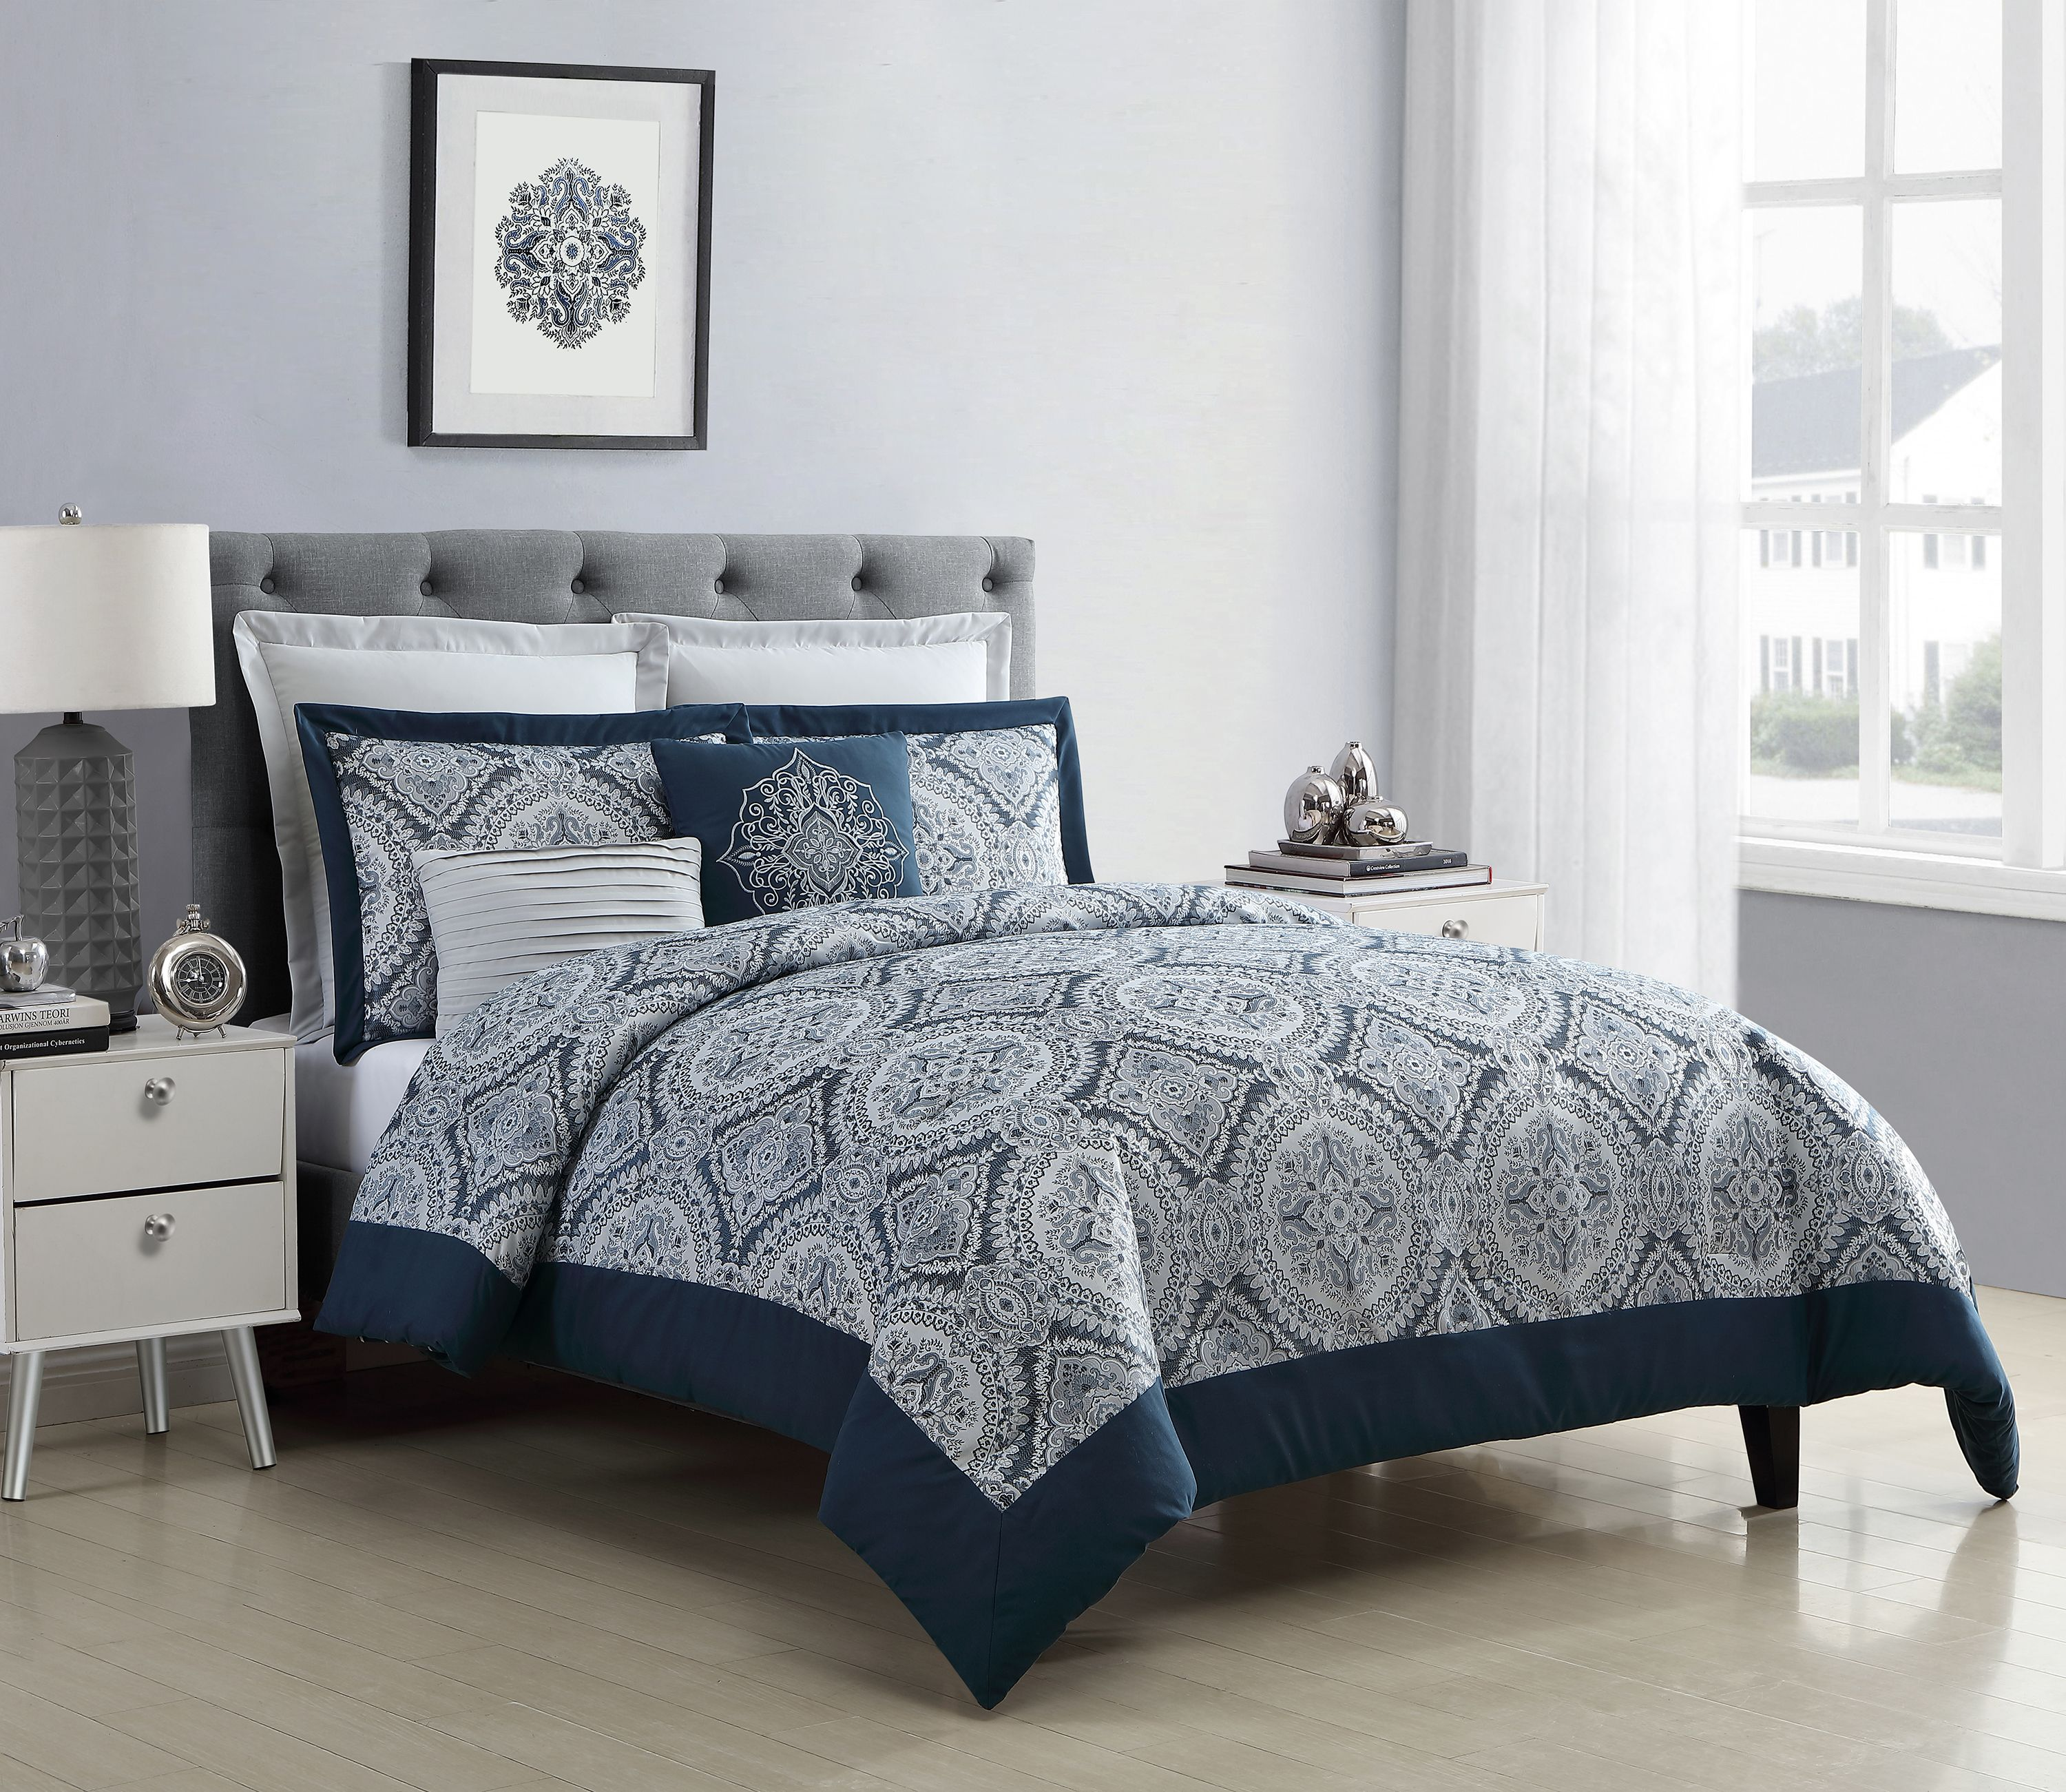 vcny home yorkshire jacquard navy medallion comforter set queen blue white